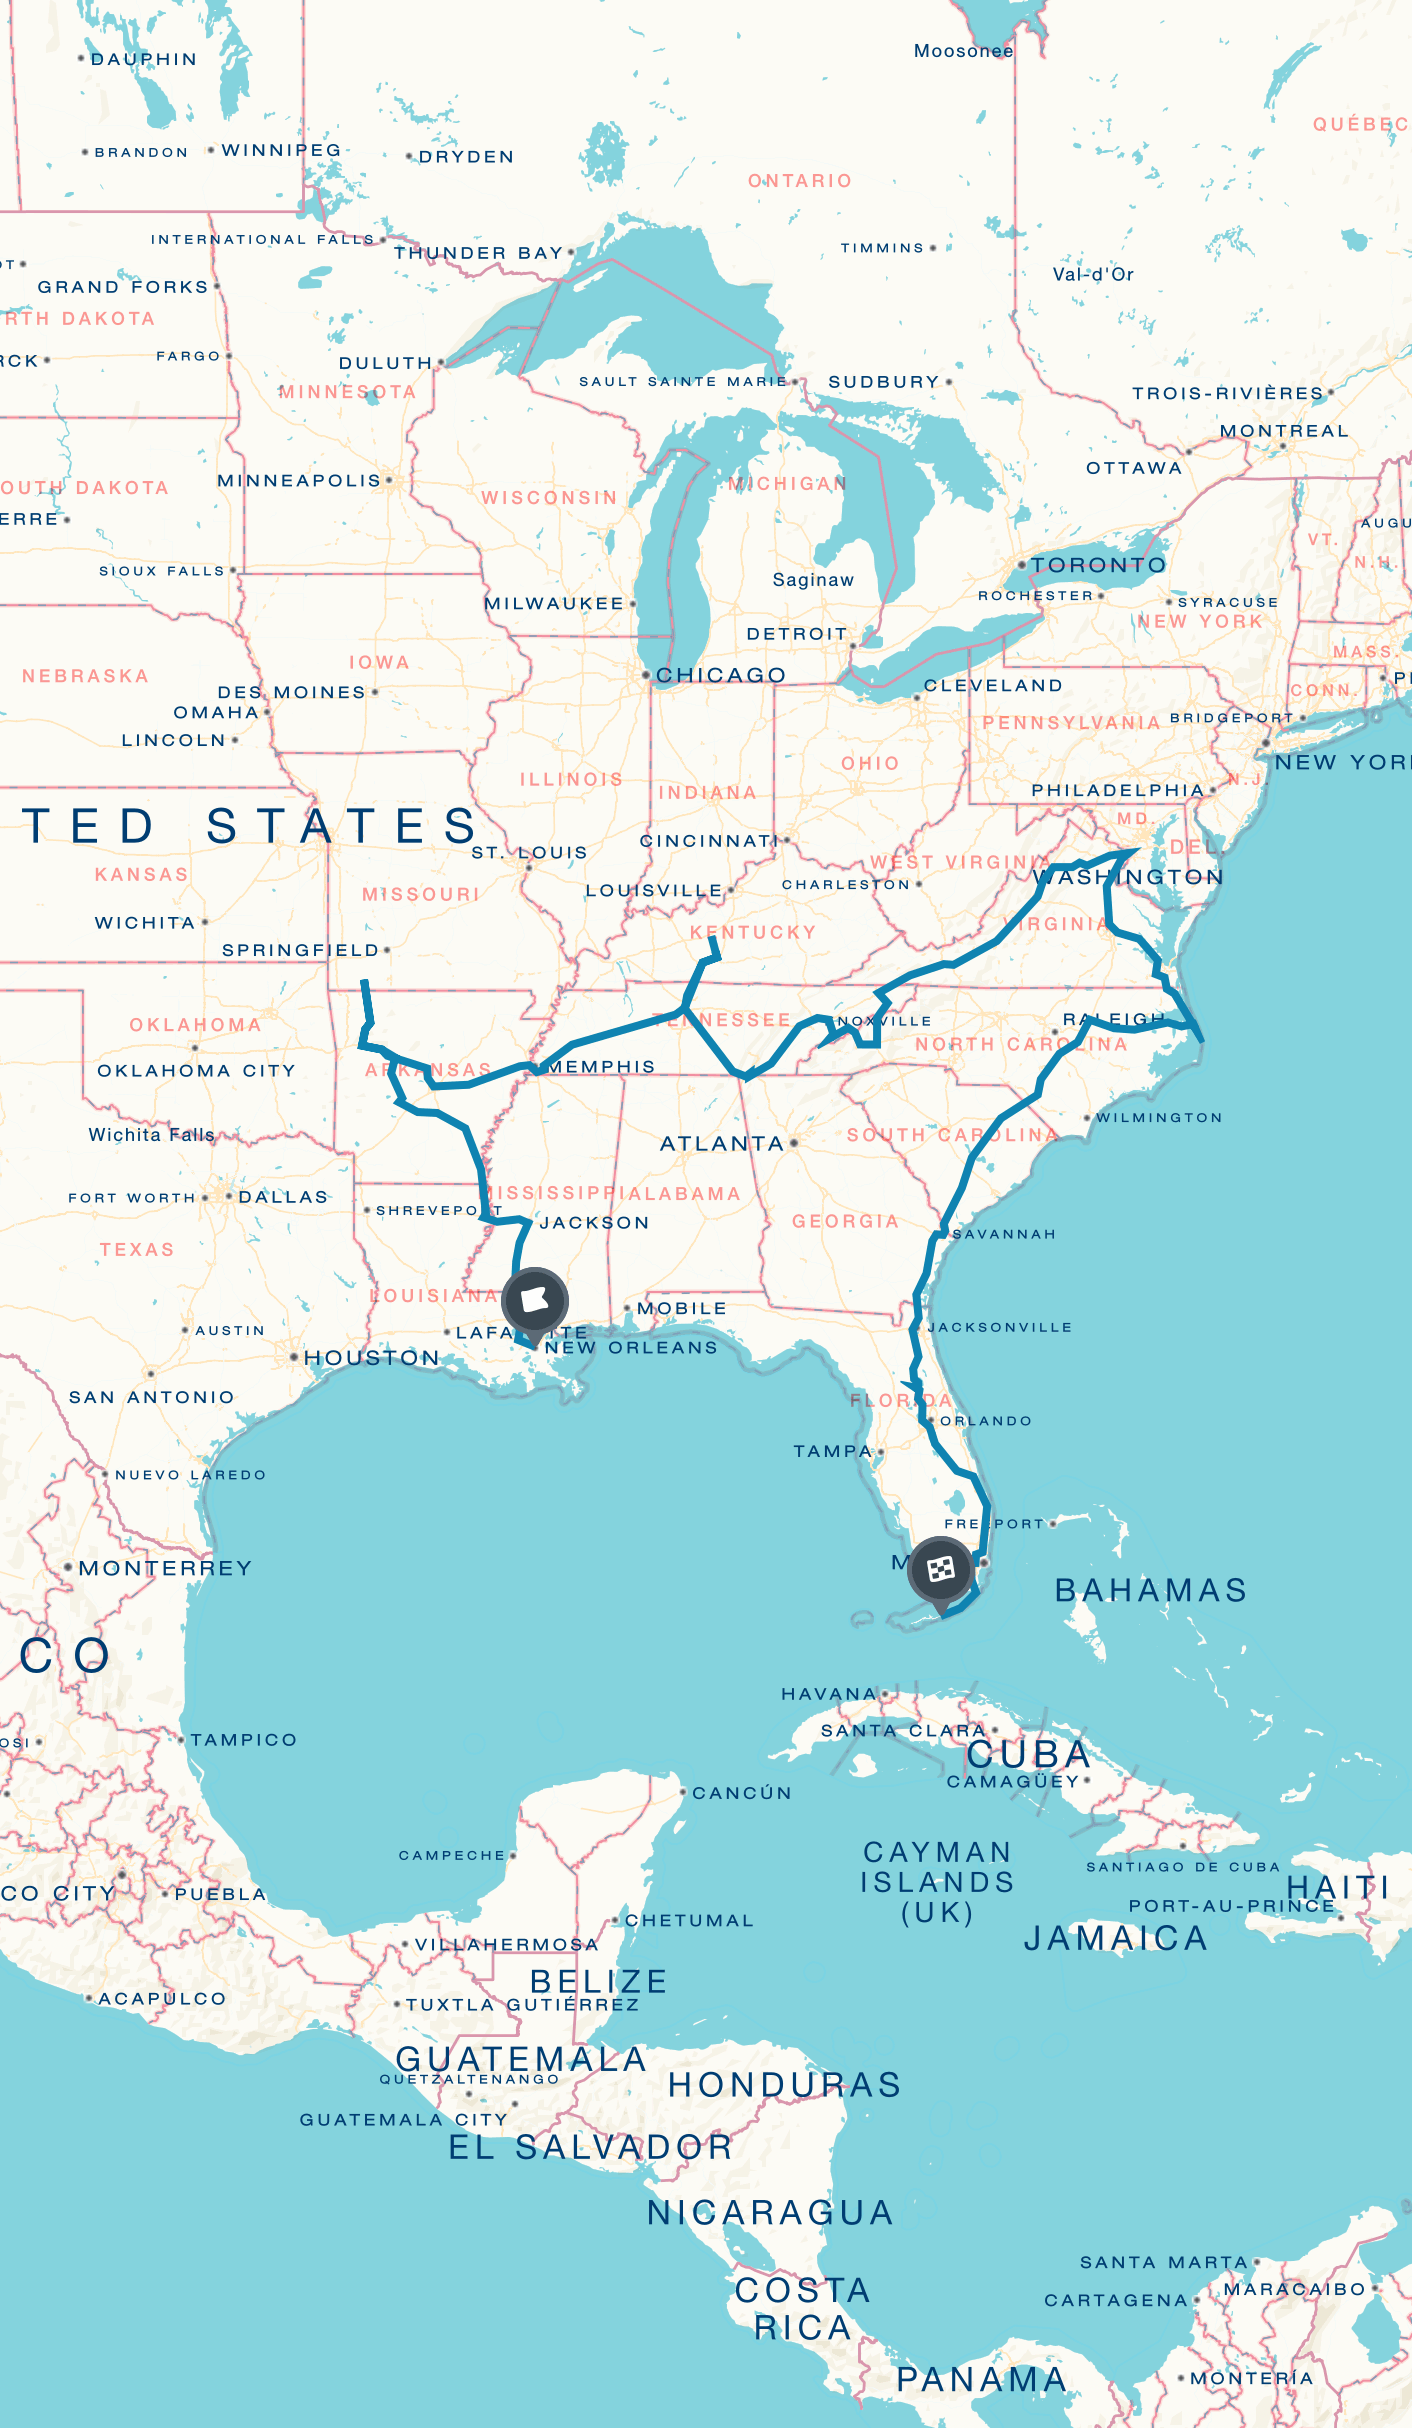 American castles and natural wonders: A Southeast road trip ...